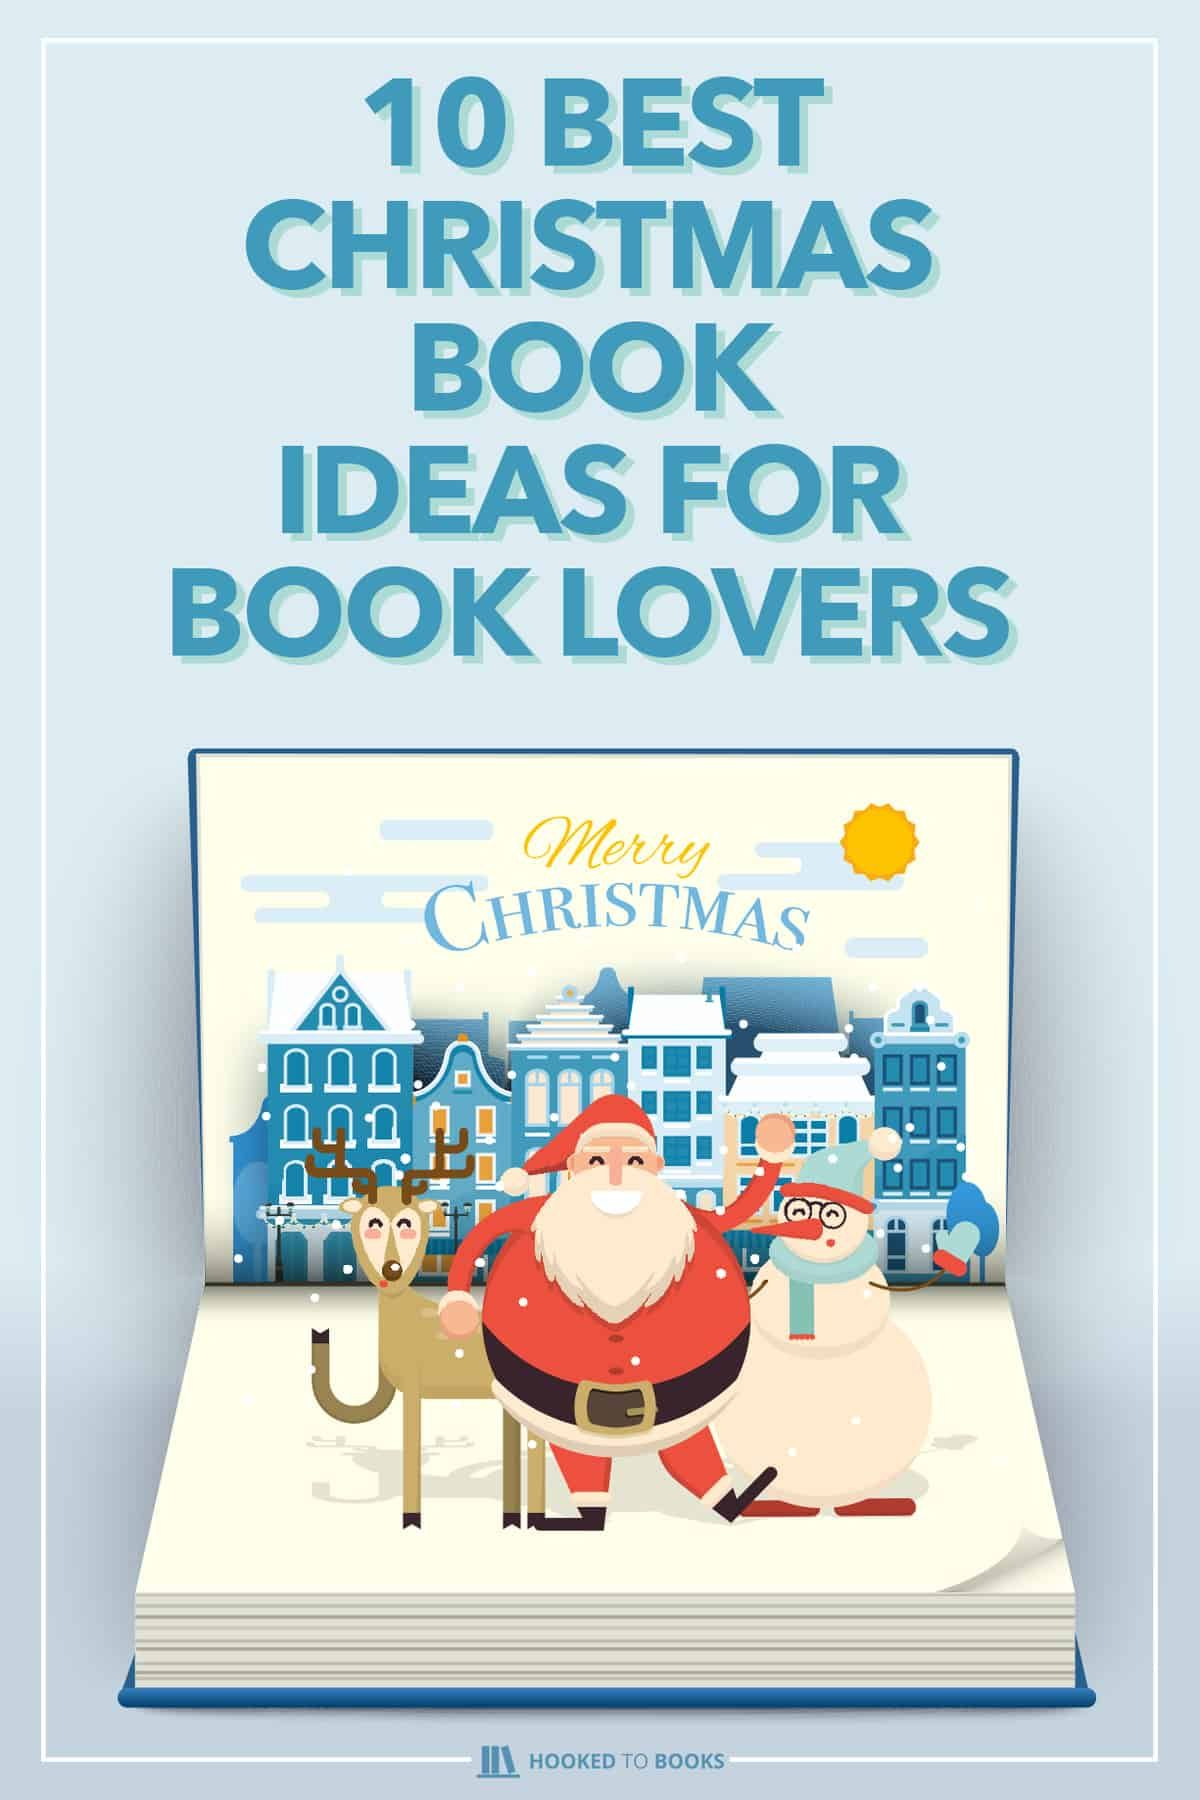 Book lovers can quickly get into holiday spirit with a good Christmas book. Is there a better way to spend the next few weeks reading a new Christmas book? Here's a selection of classic tales that will surely please every avid reader. #christmasfeels #holidays #christmasreference #hookedtobooks #christmasbooks #booklovers